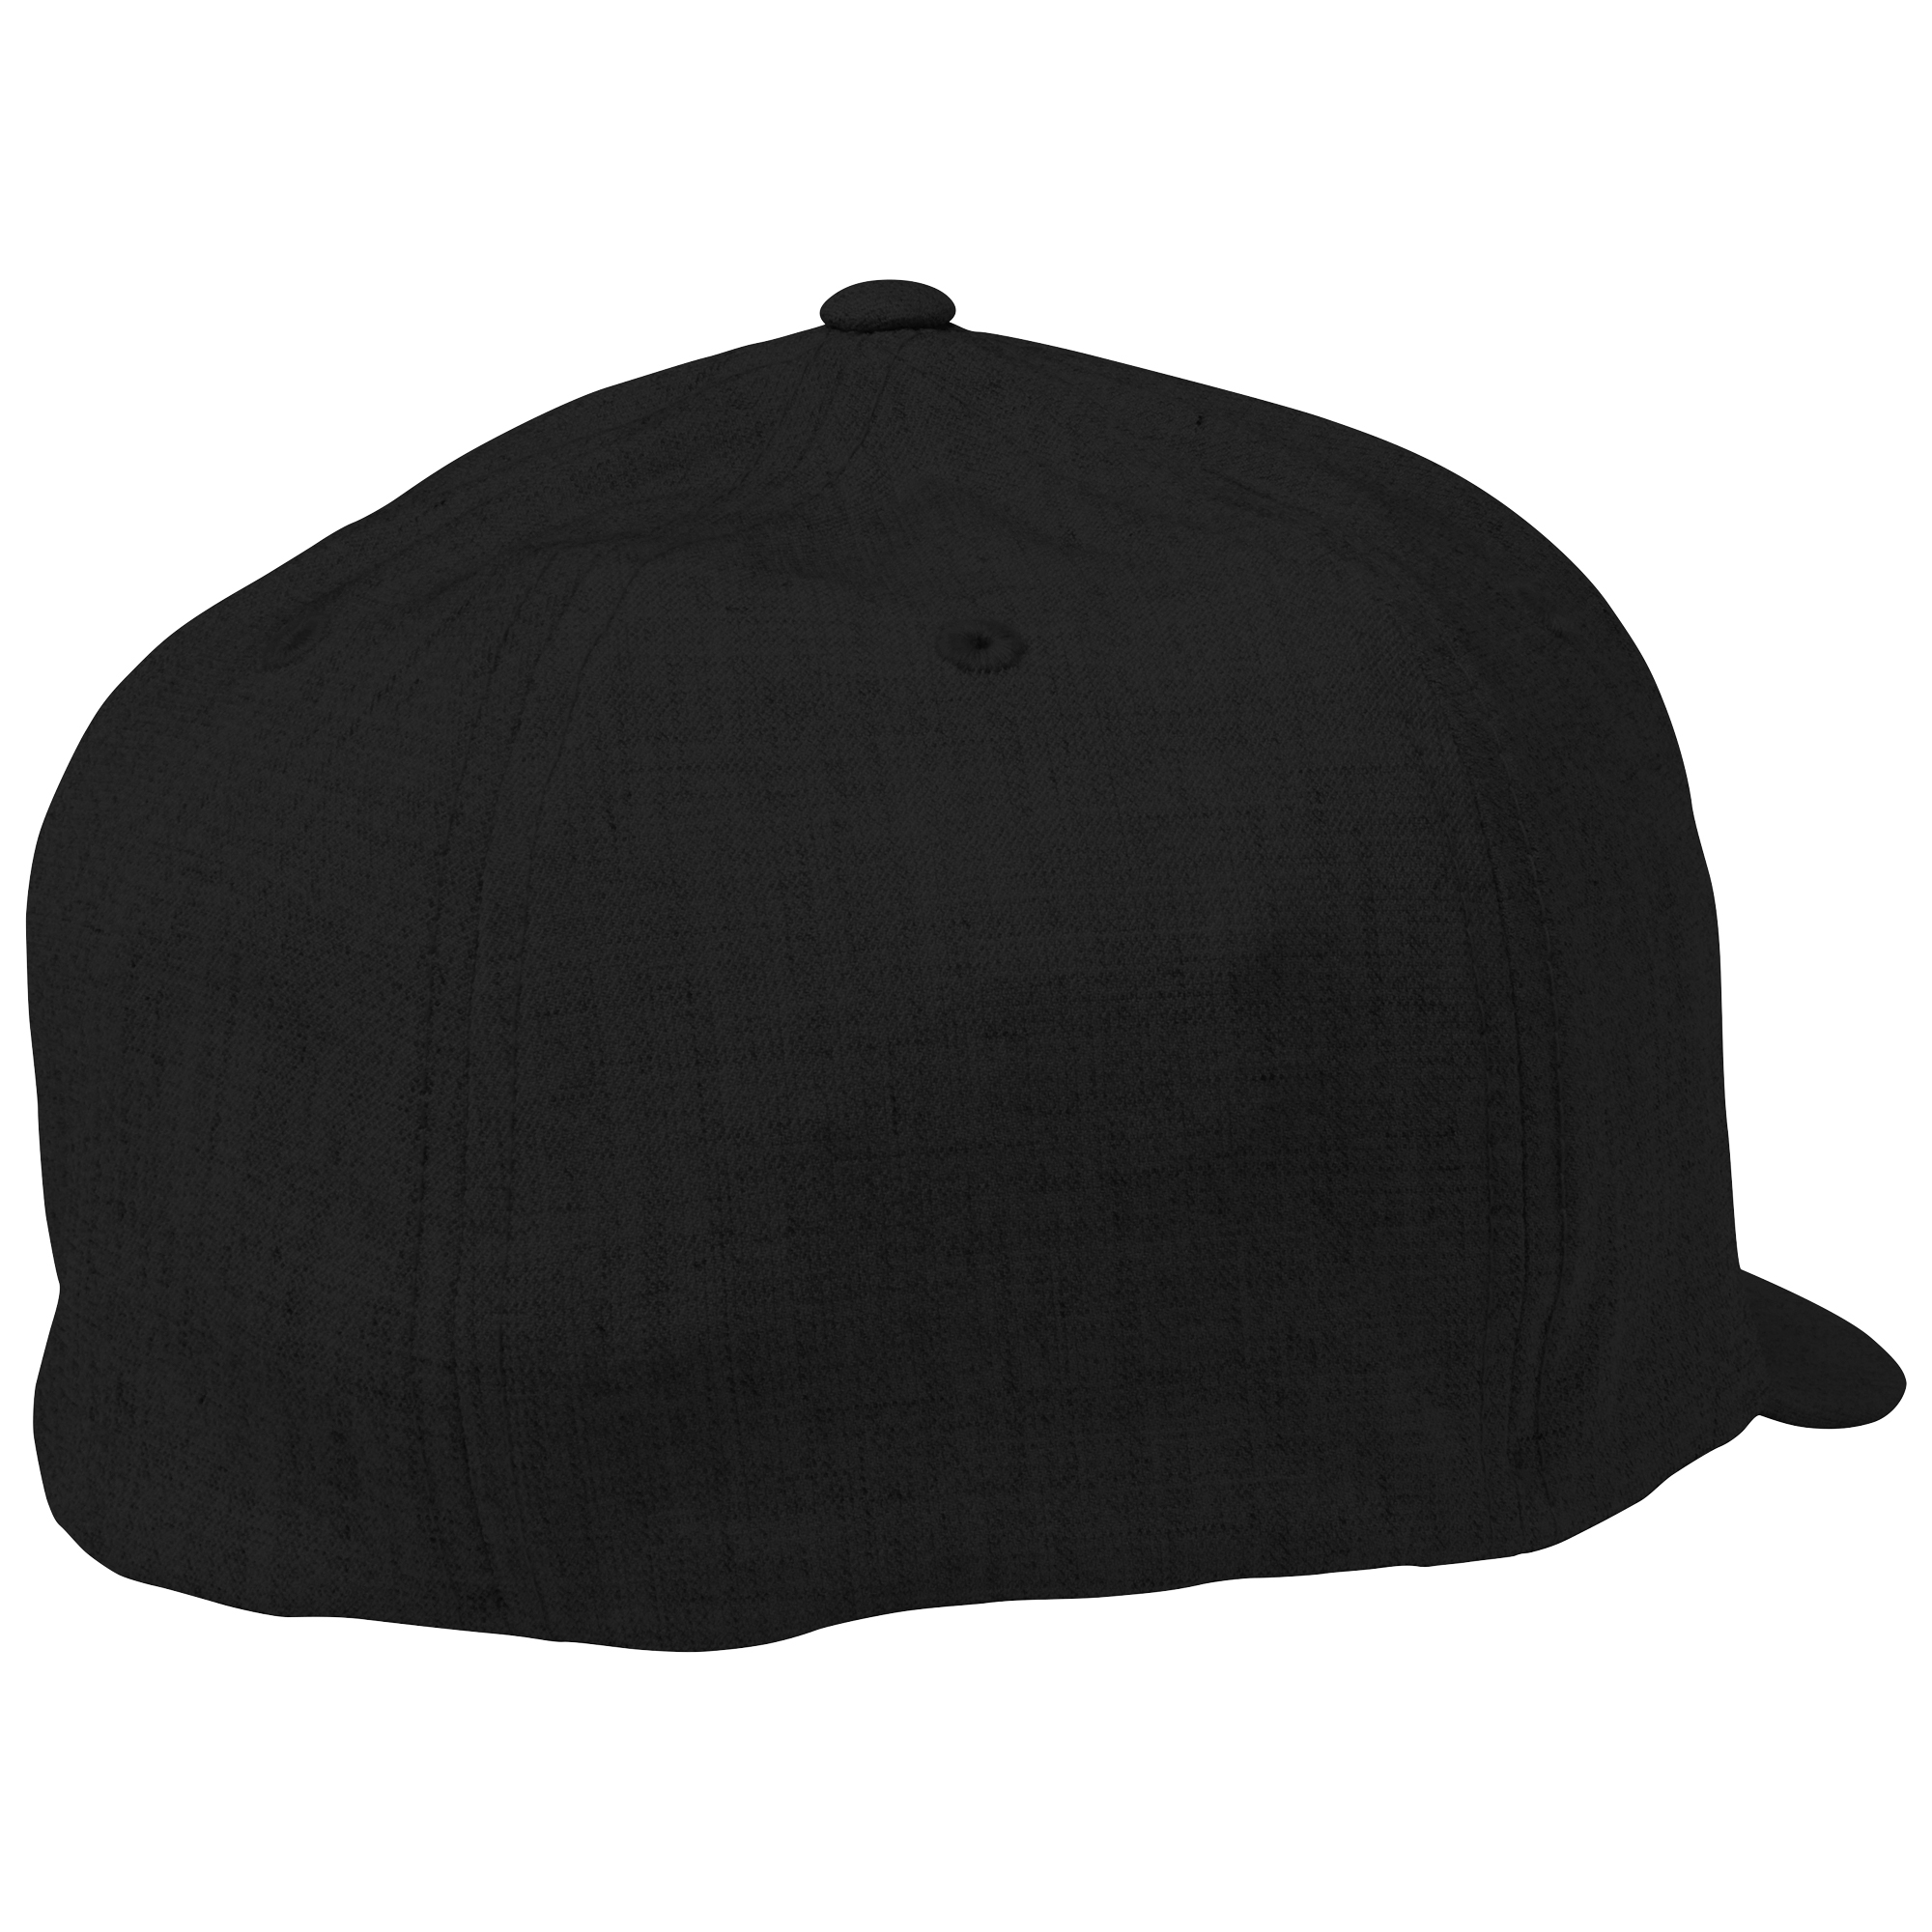 Fox-Racing-Mens-Clouded-Flexfit-Hat-Cap-Stretch-to-fit-Design-Curved-Bill thumbnail 7